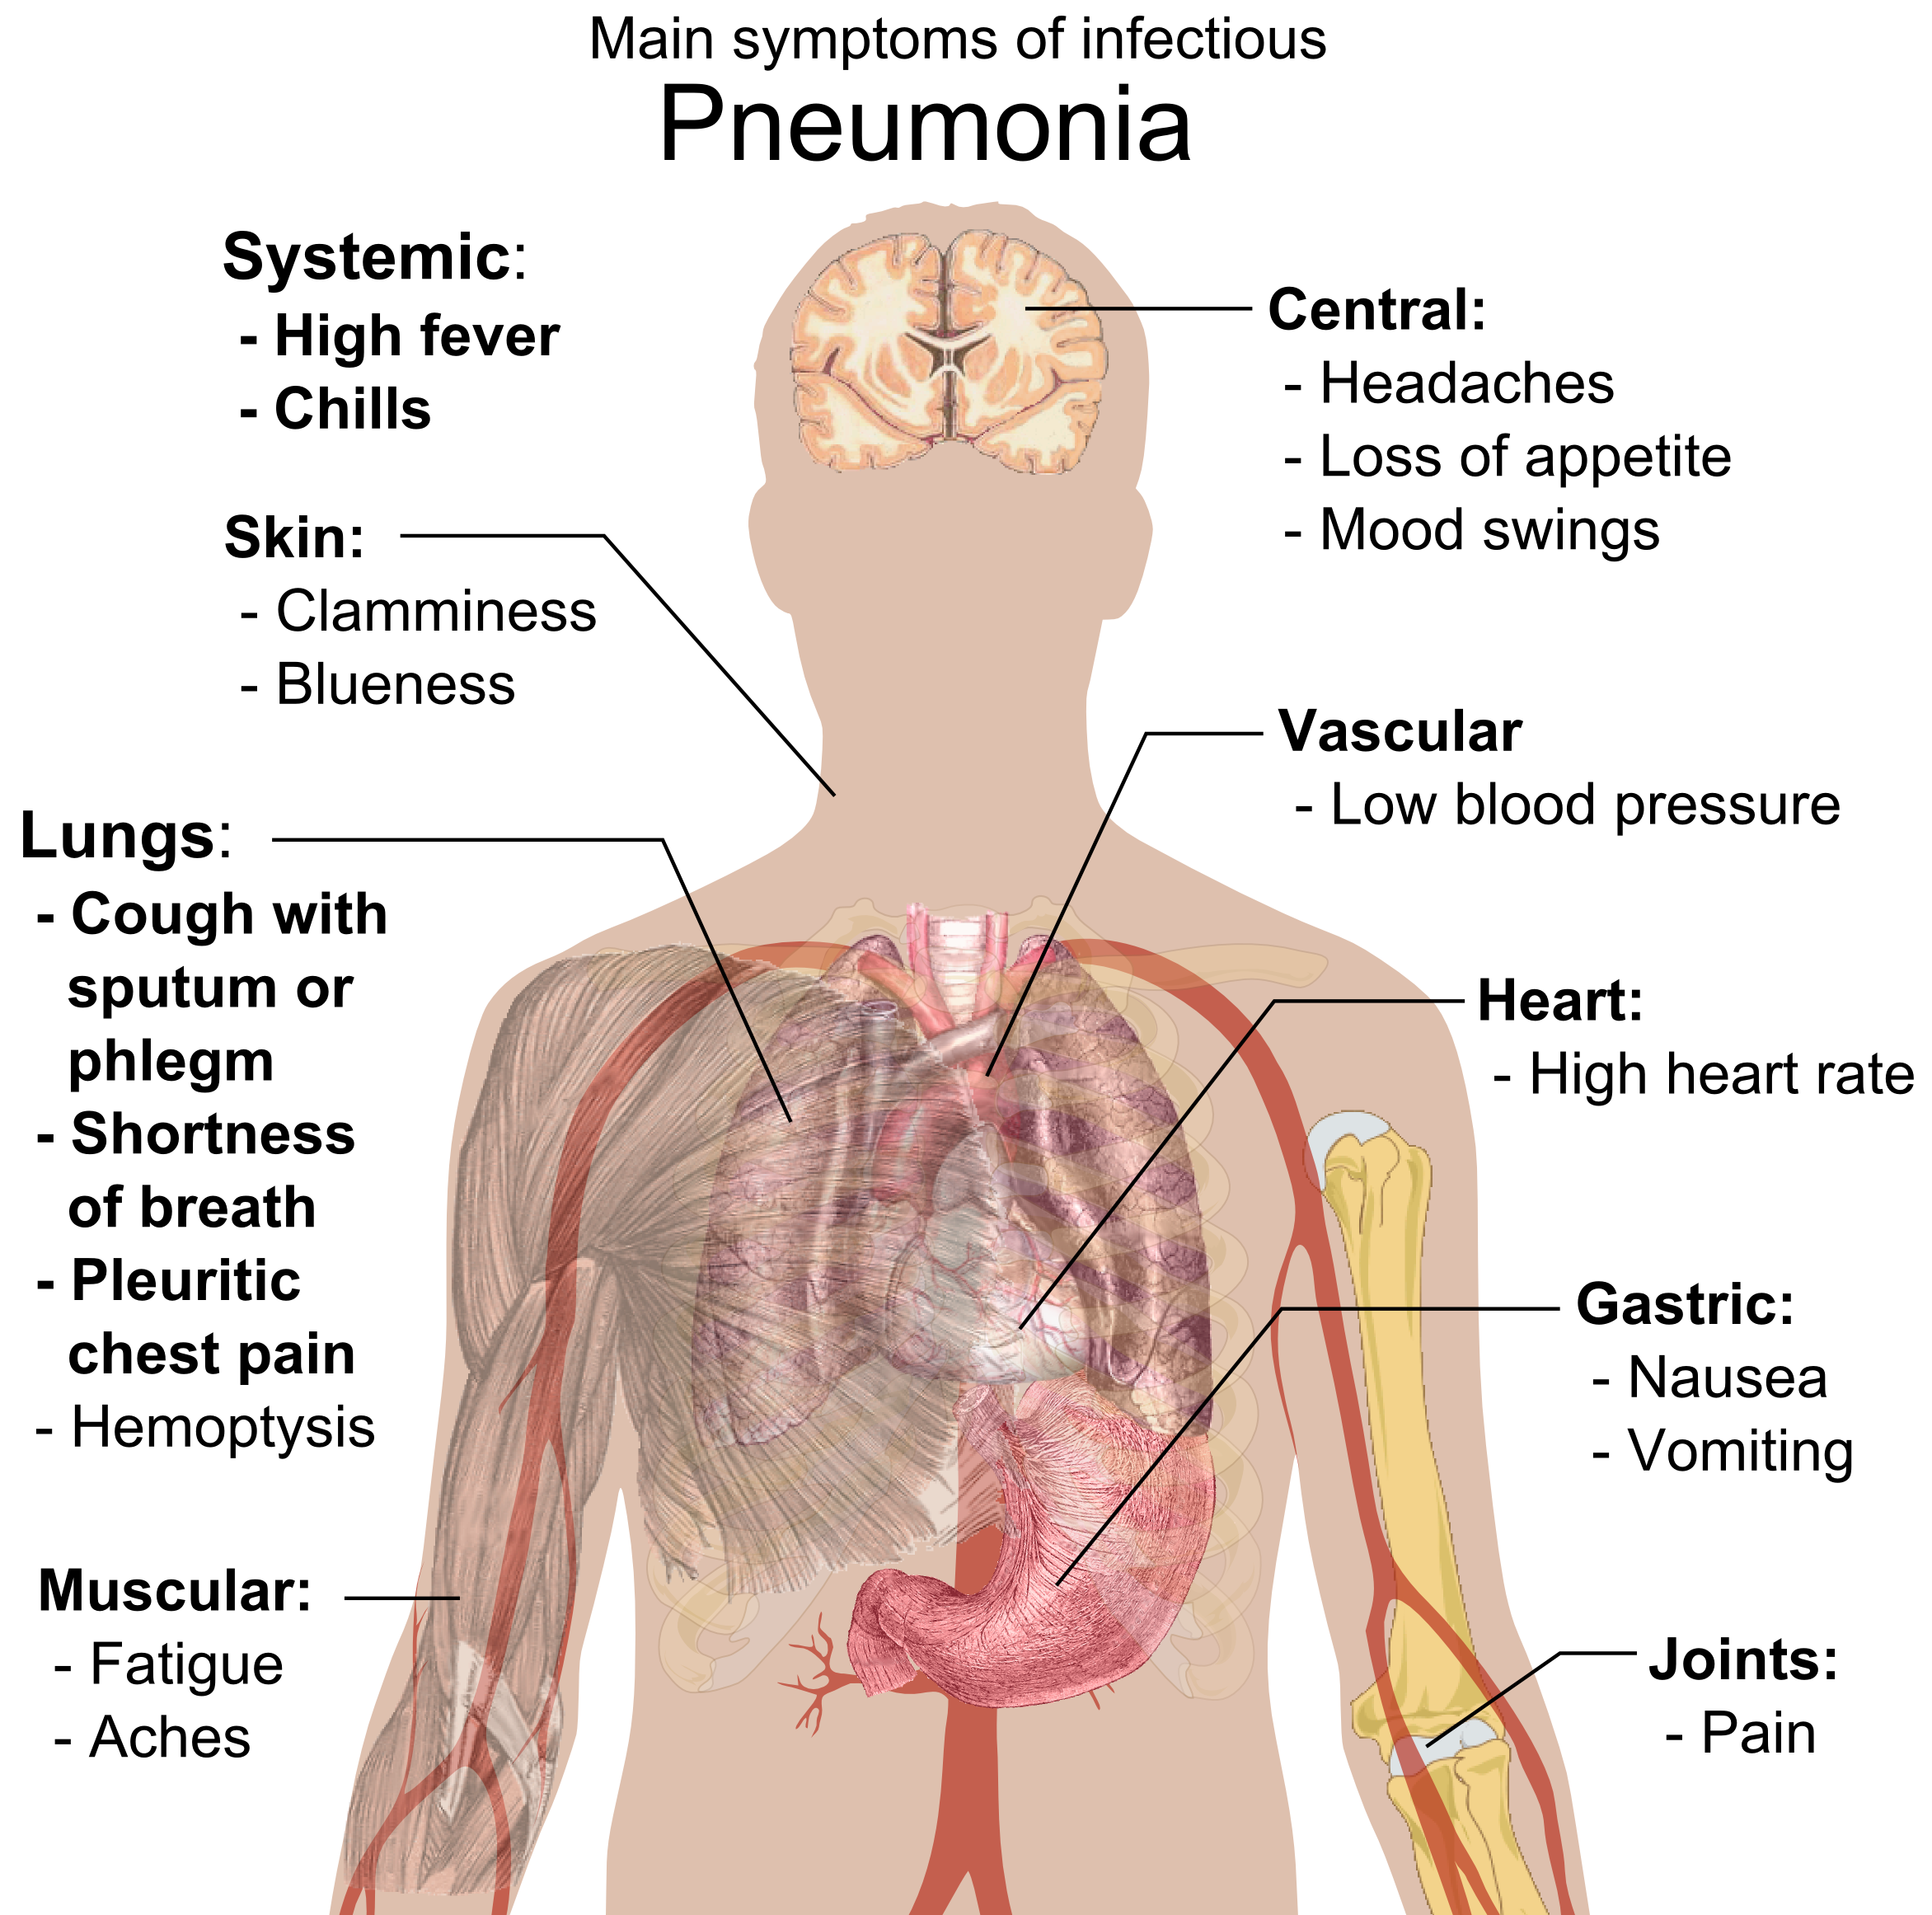 Fever clipart pneumonia patient. Png transparent images filemain